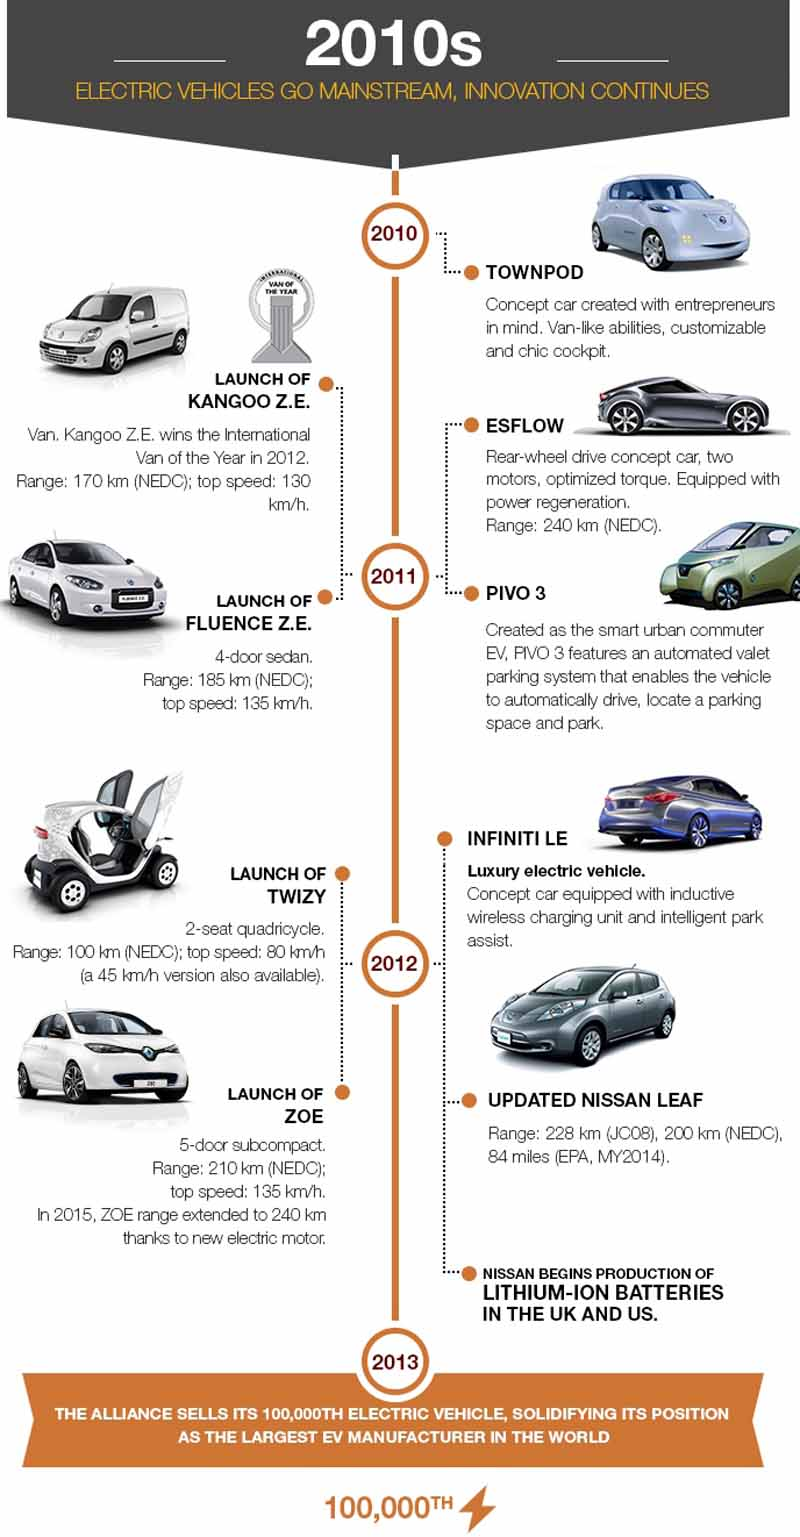 renault-nissan-alliance-electric-car-sales-total-250000-units-a-report20150702-3-min